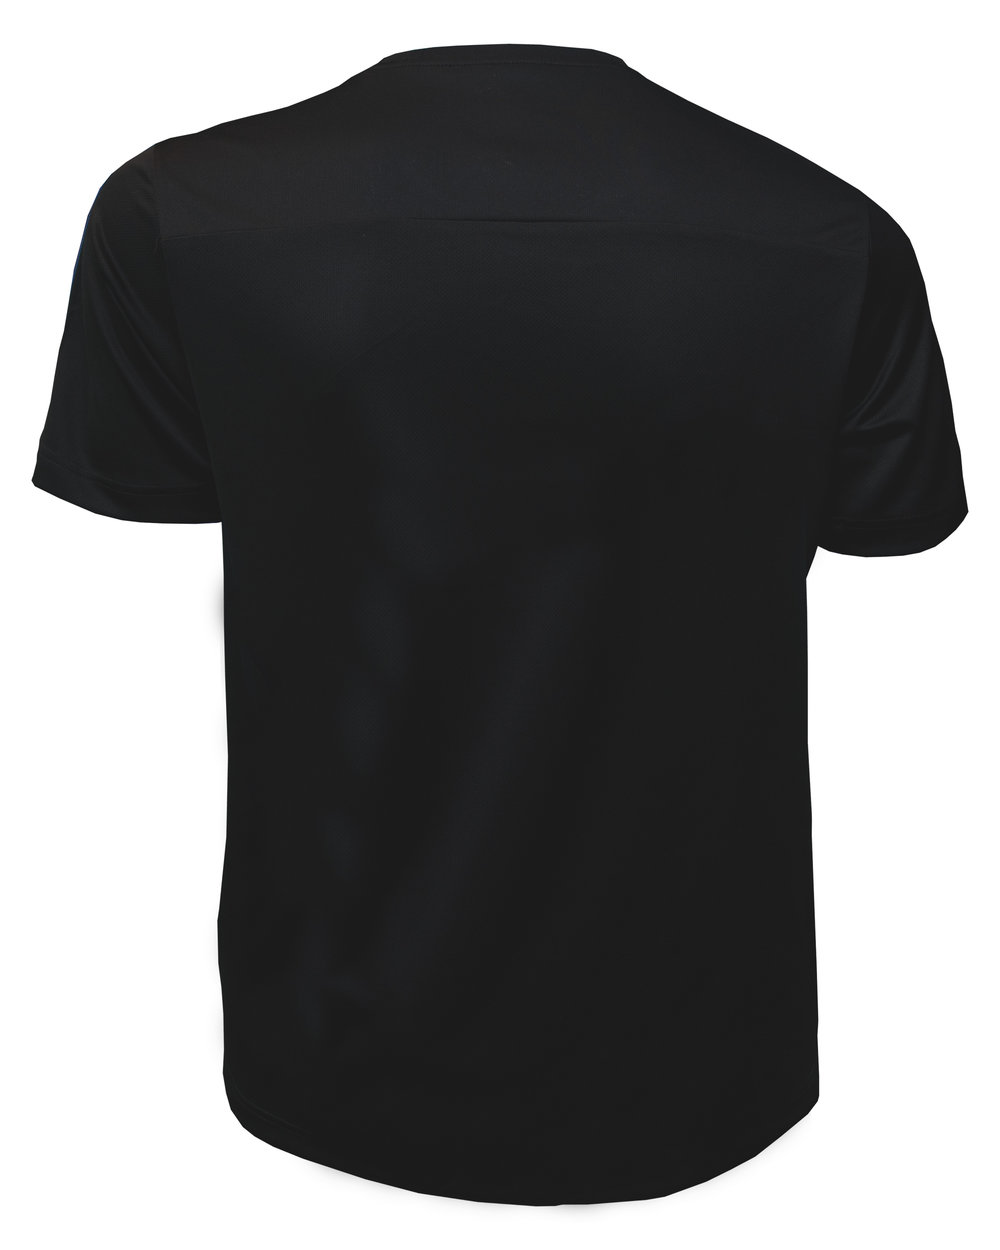 CITY2SURF_TEE_M_BACK.jpg